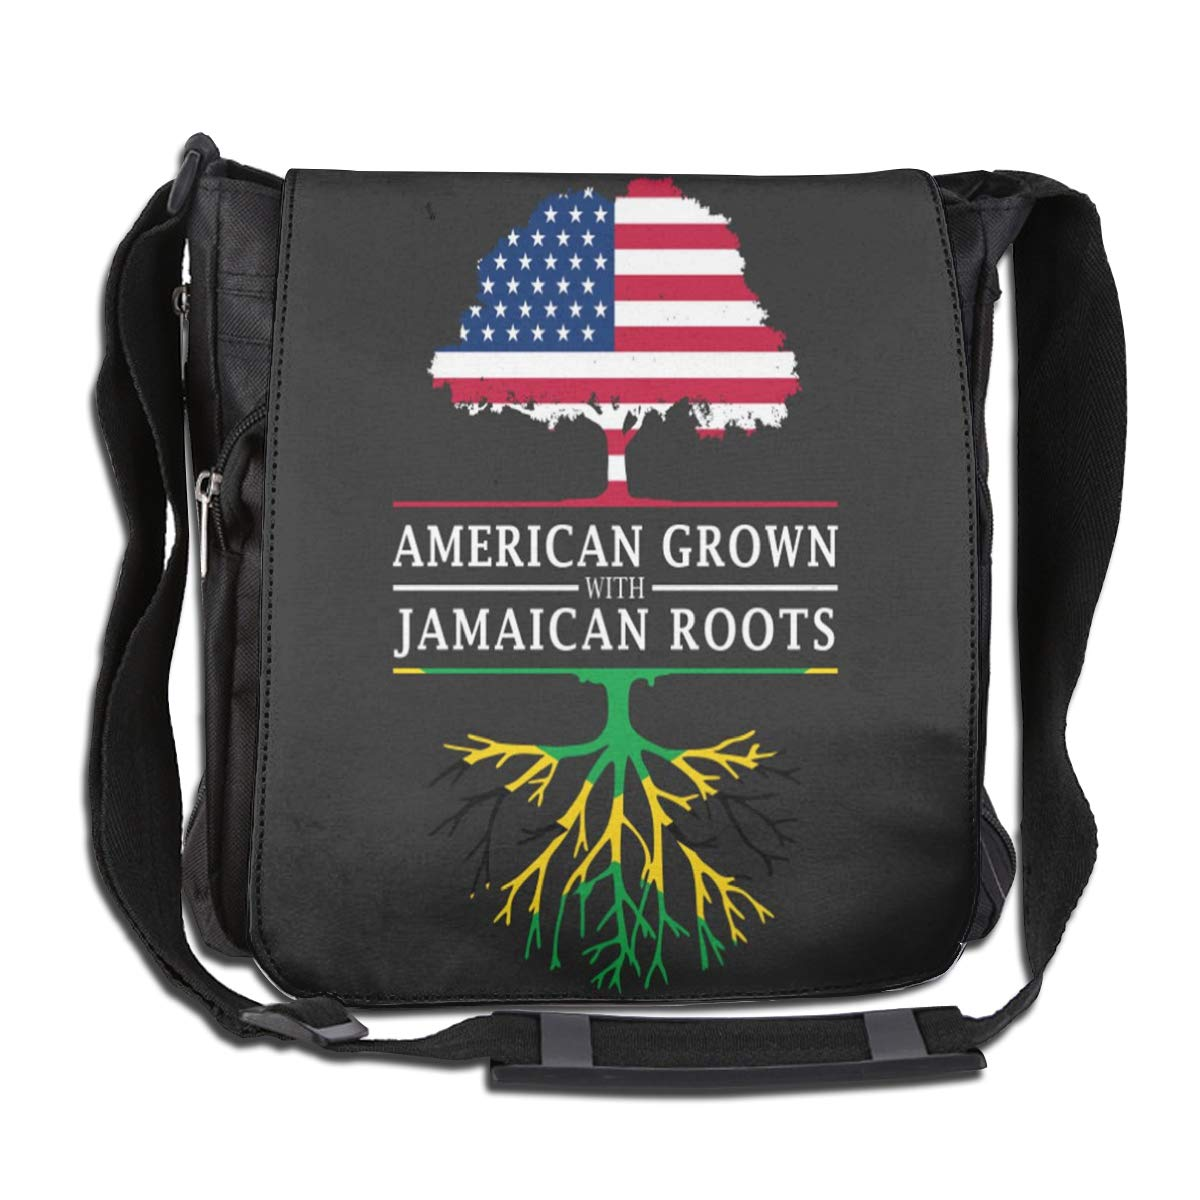 Jamaican Grown Roots Fashion Diagonal Single Shoulder Workout Bag